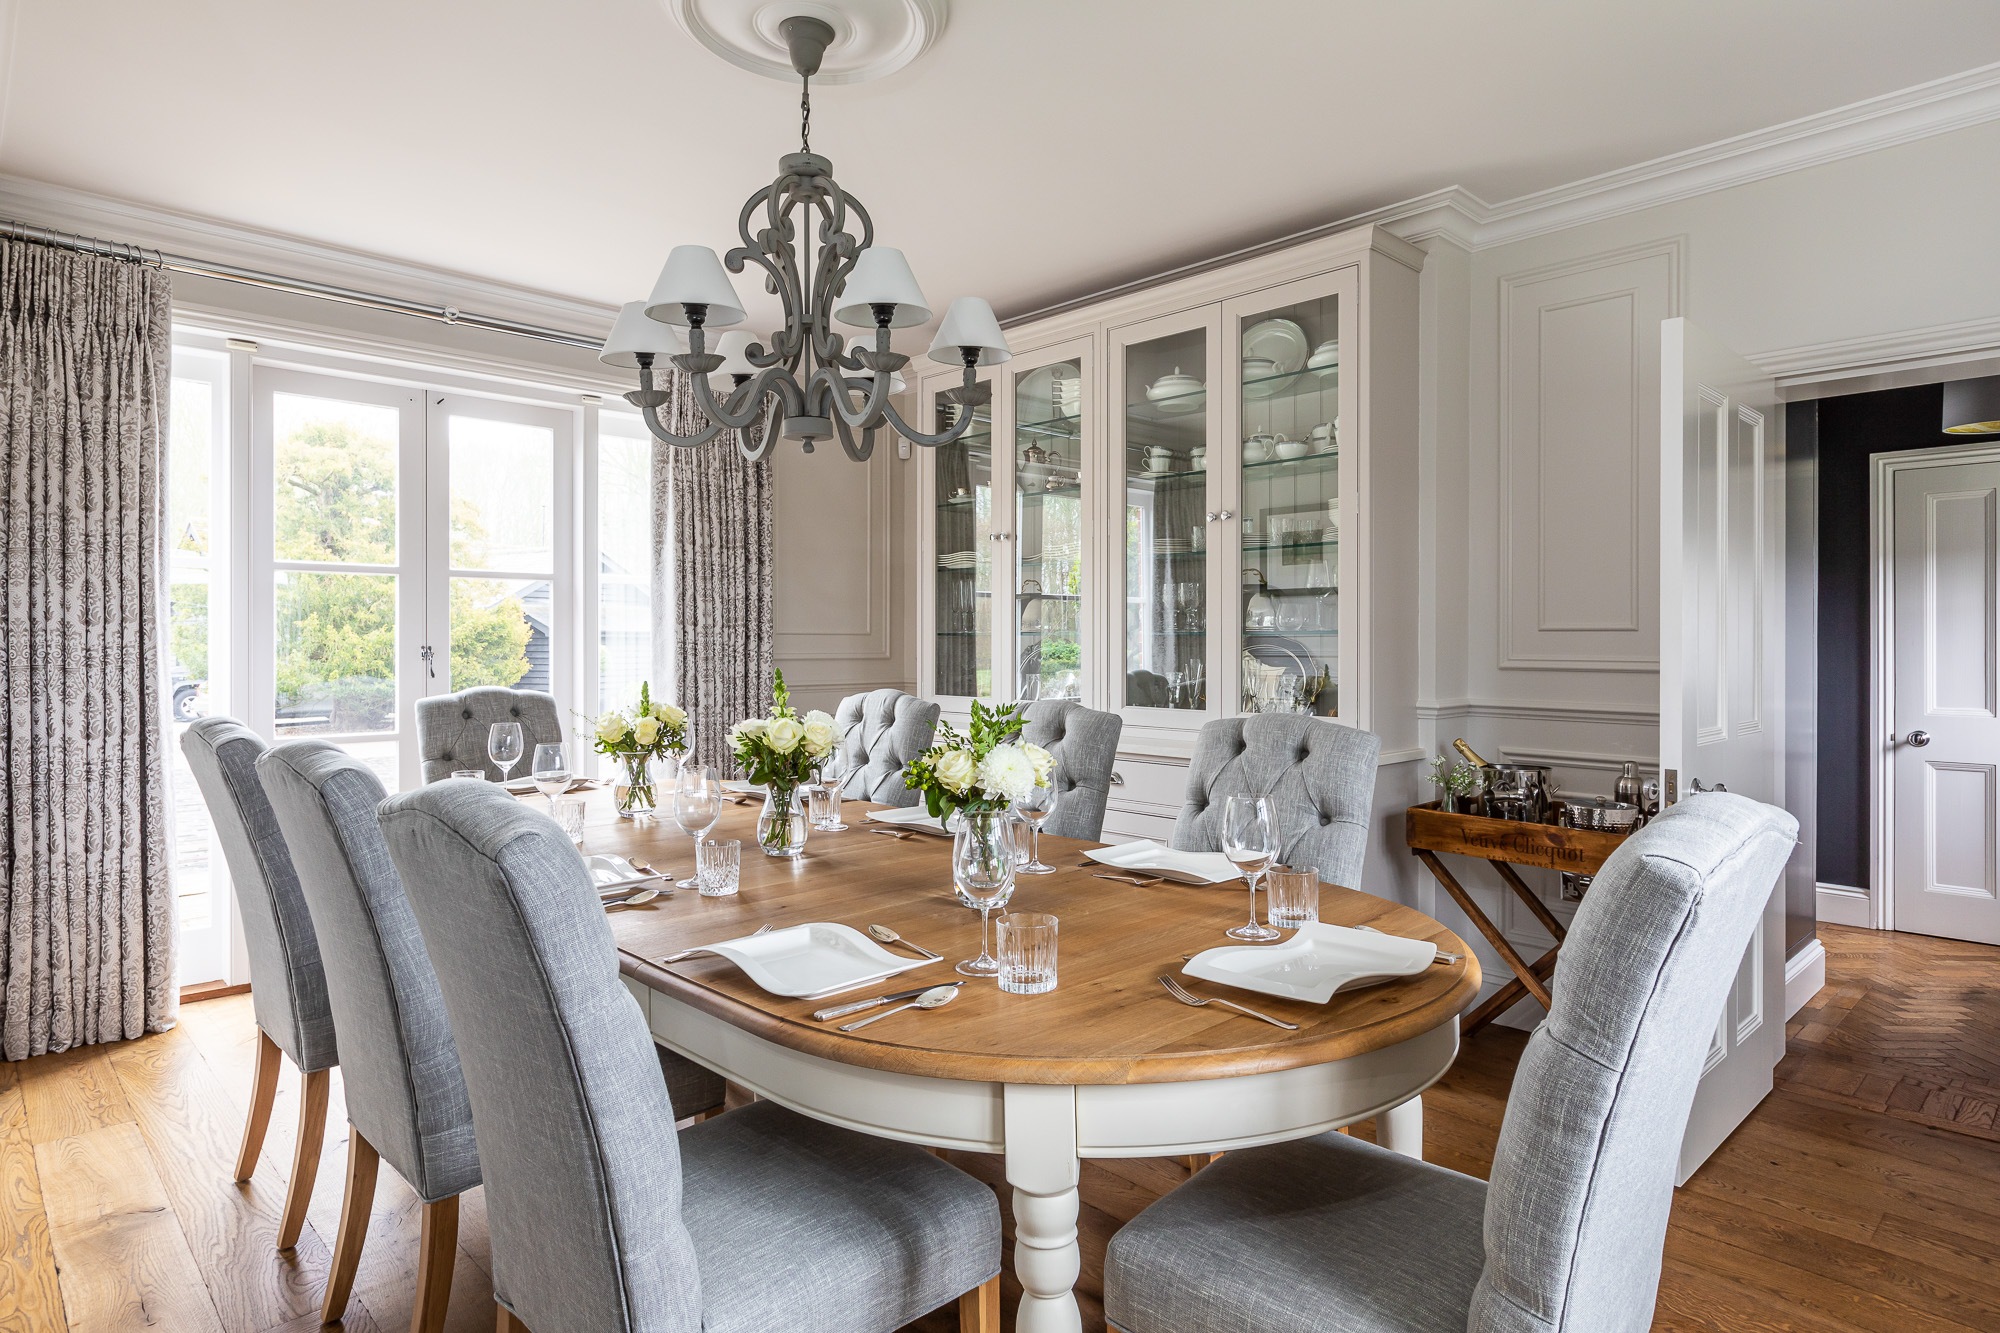 jonathan bond, interior photographer, dining room table & chairs, harlow